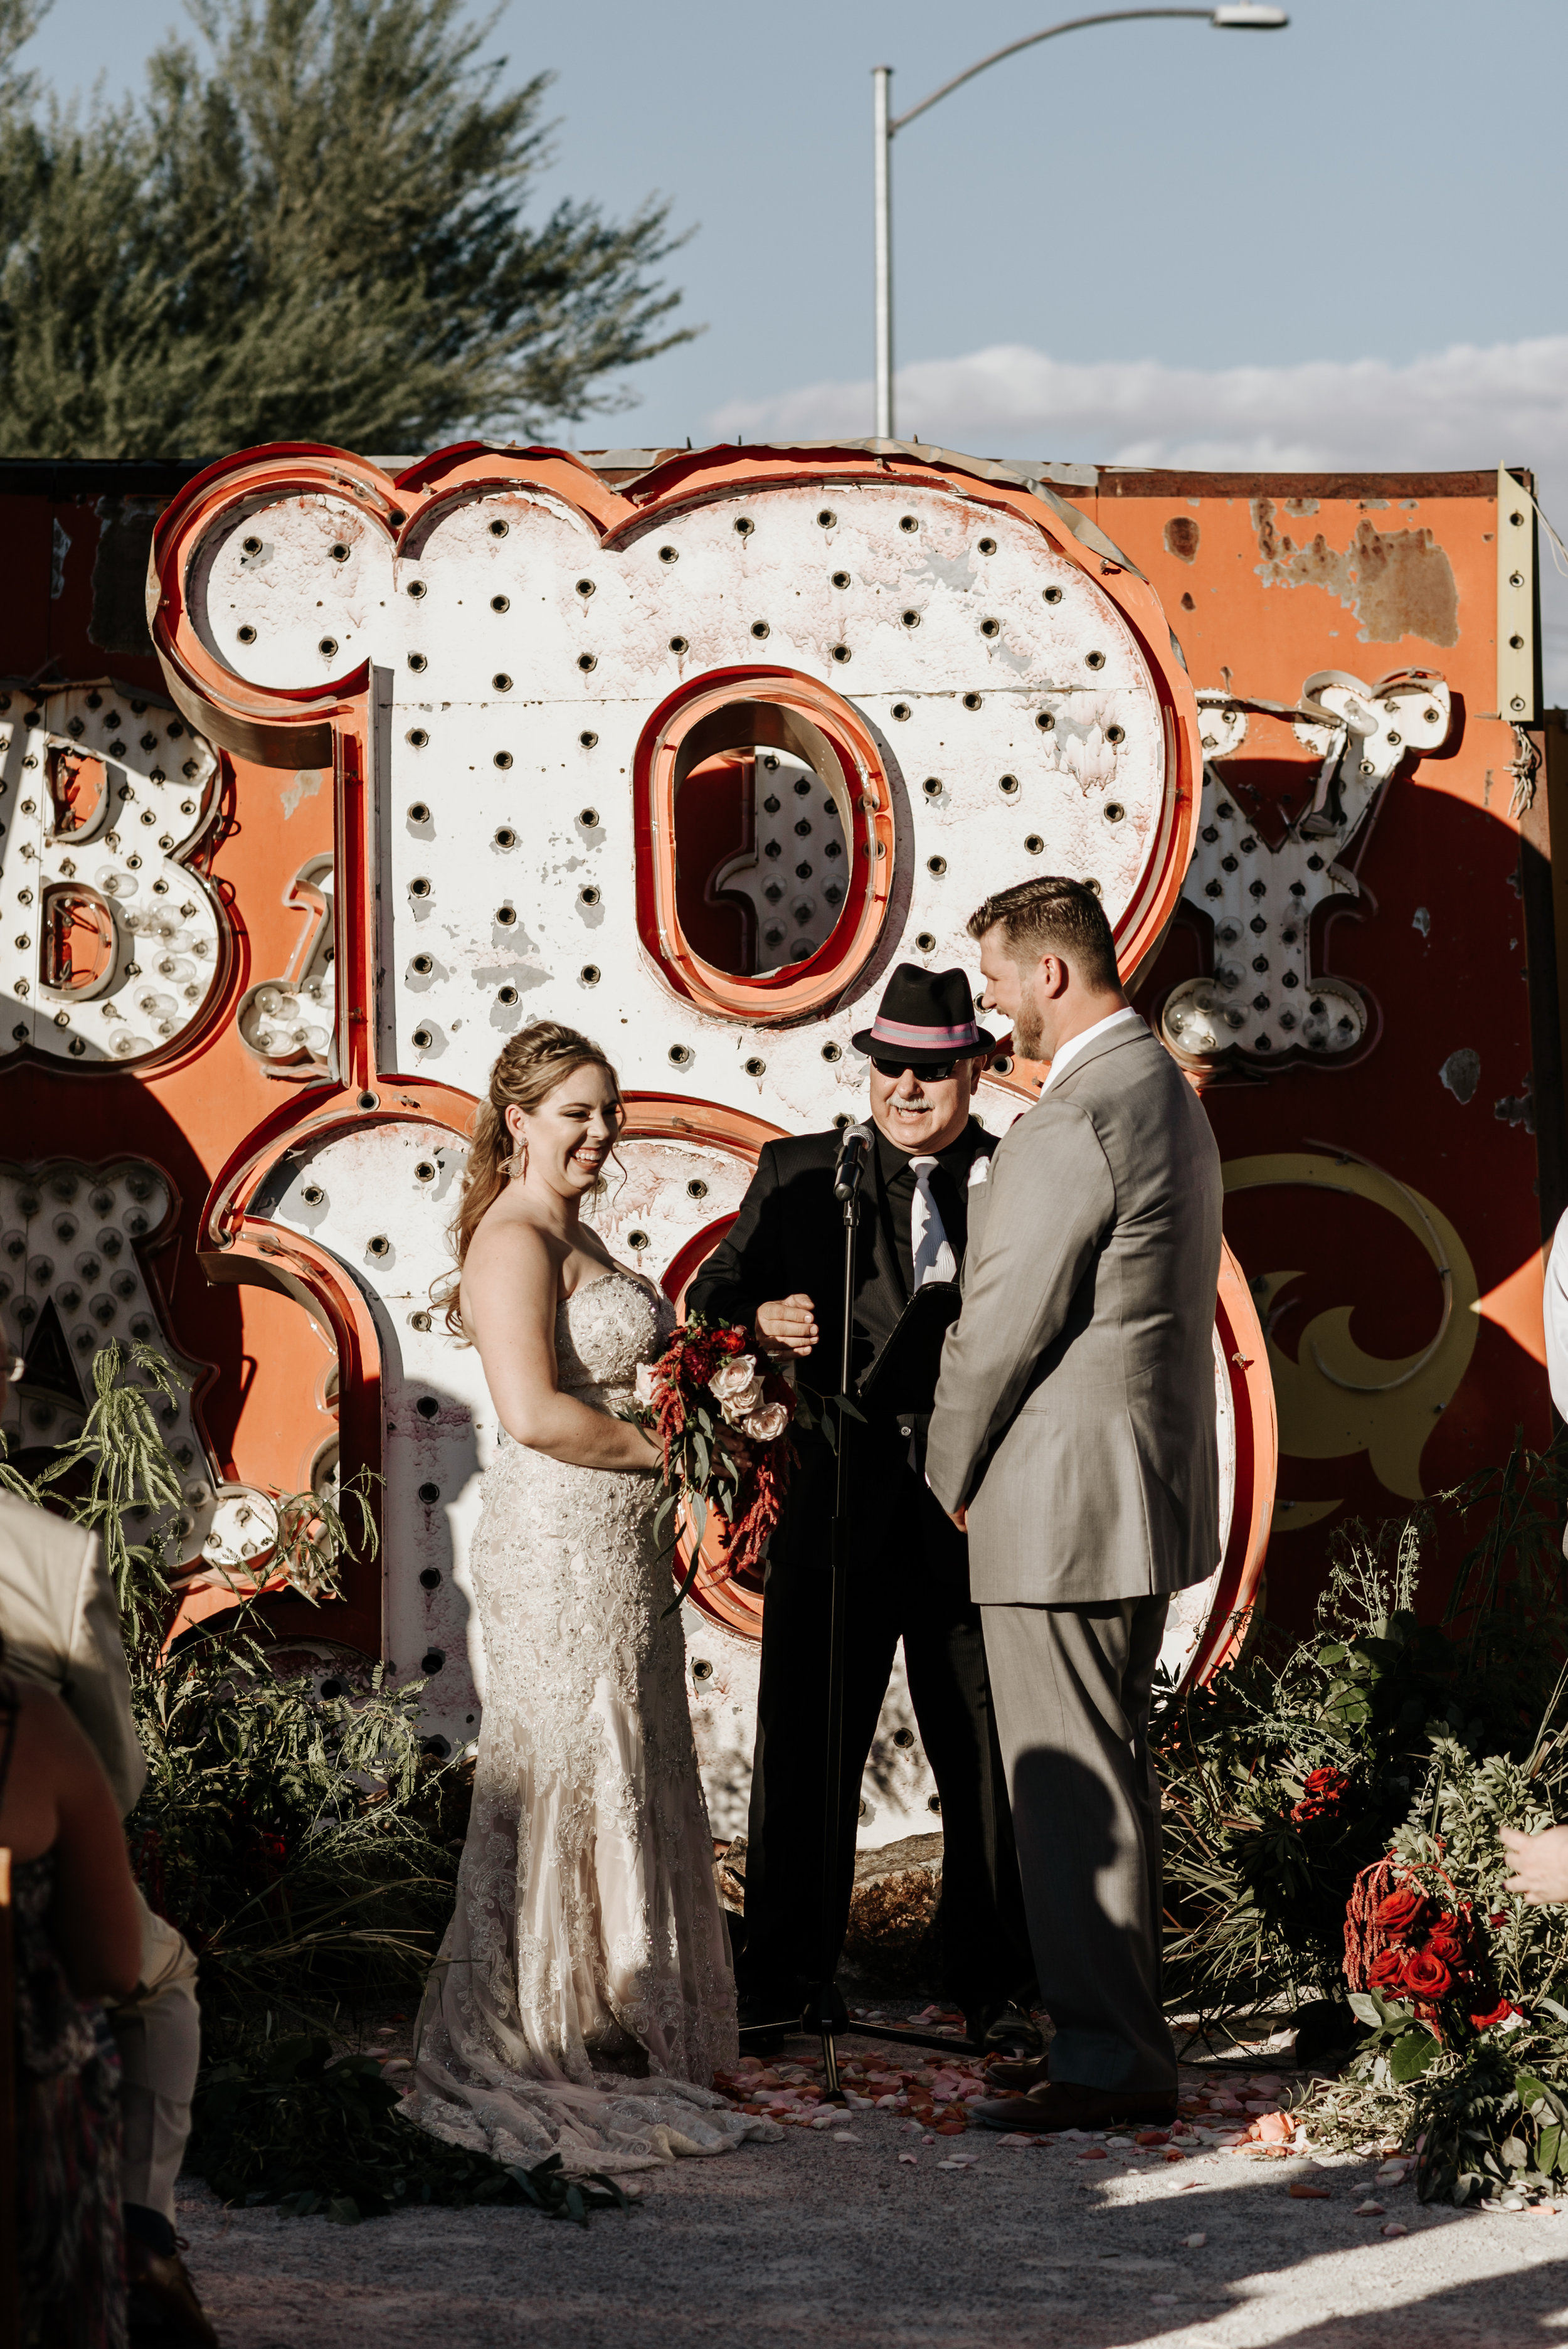 Neon-Museum-Wedding-Las-Vegas-Nevada-Golden-Nugget-Photography-by-V-Ally-and-Dan-6595.jpg